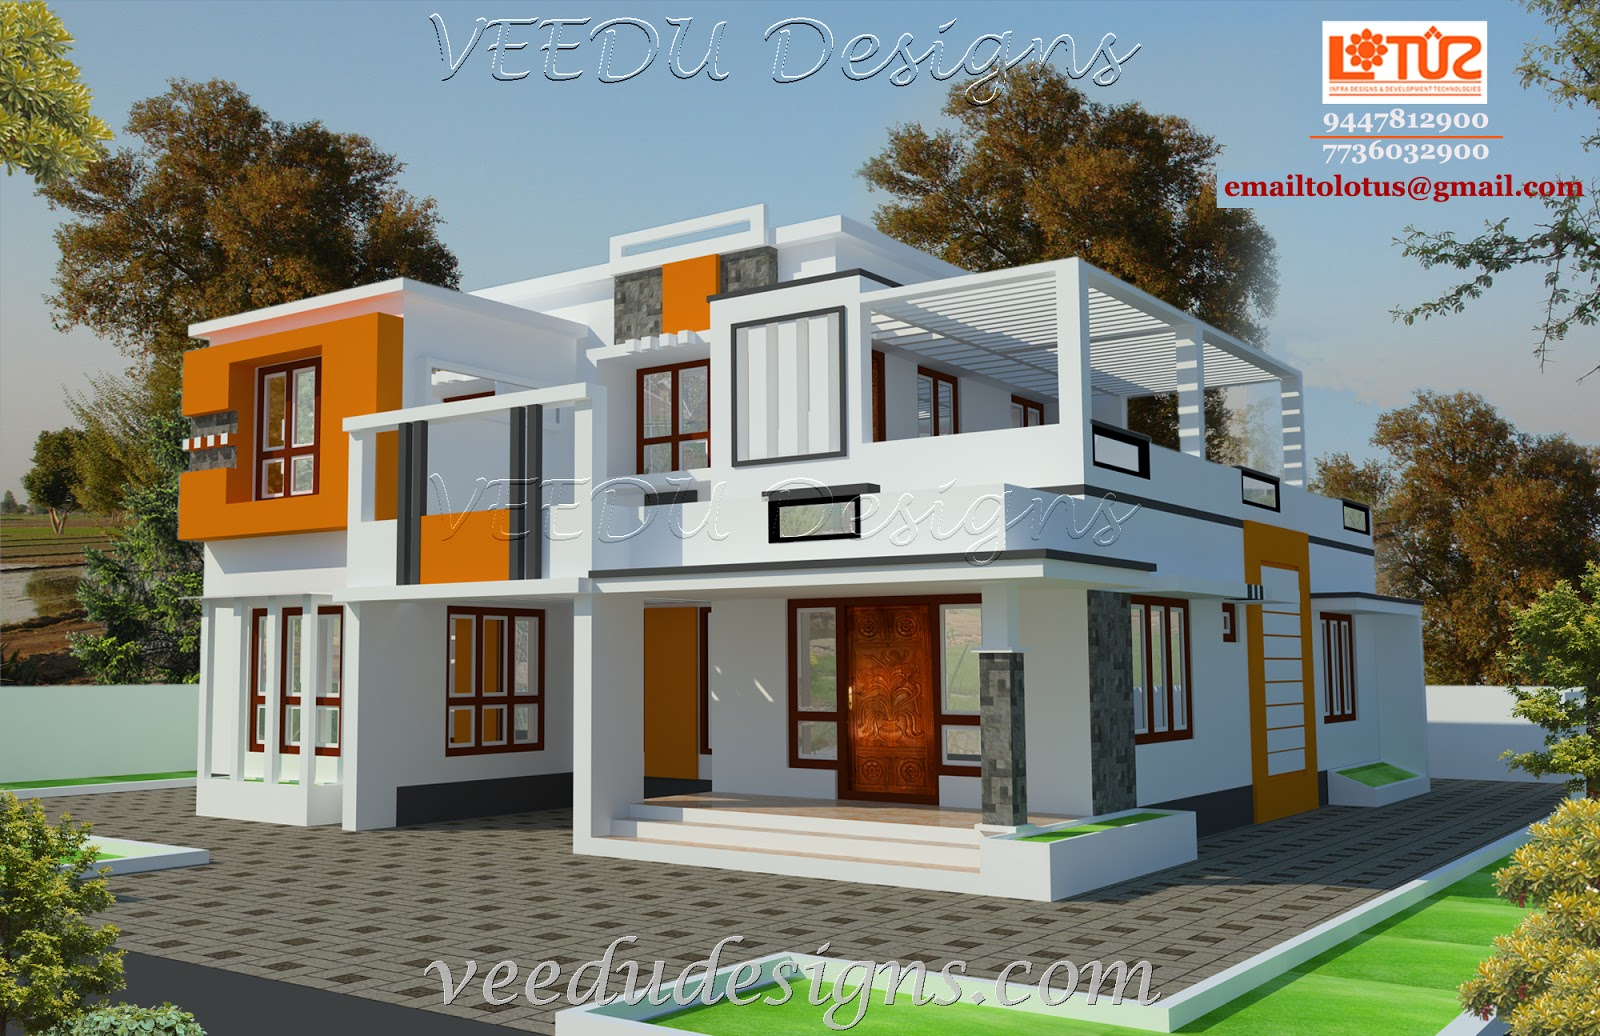 Veedu designs kerala home designs for Home designs 2016